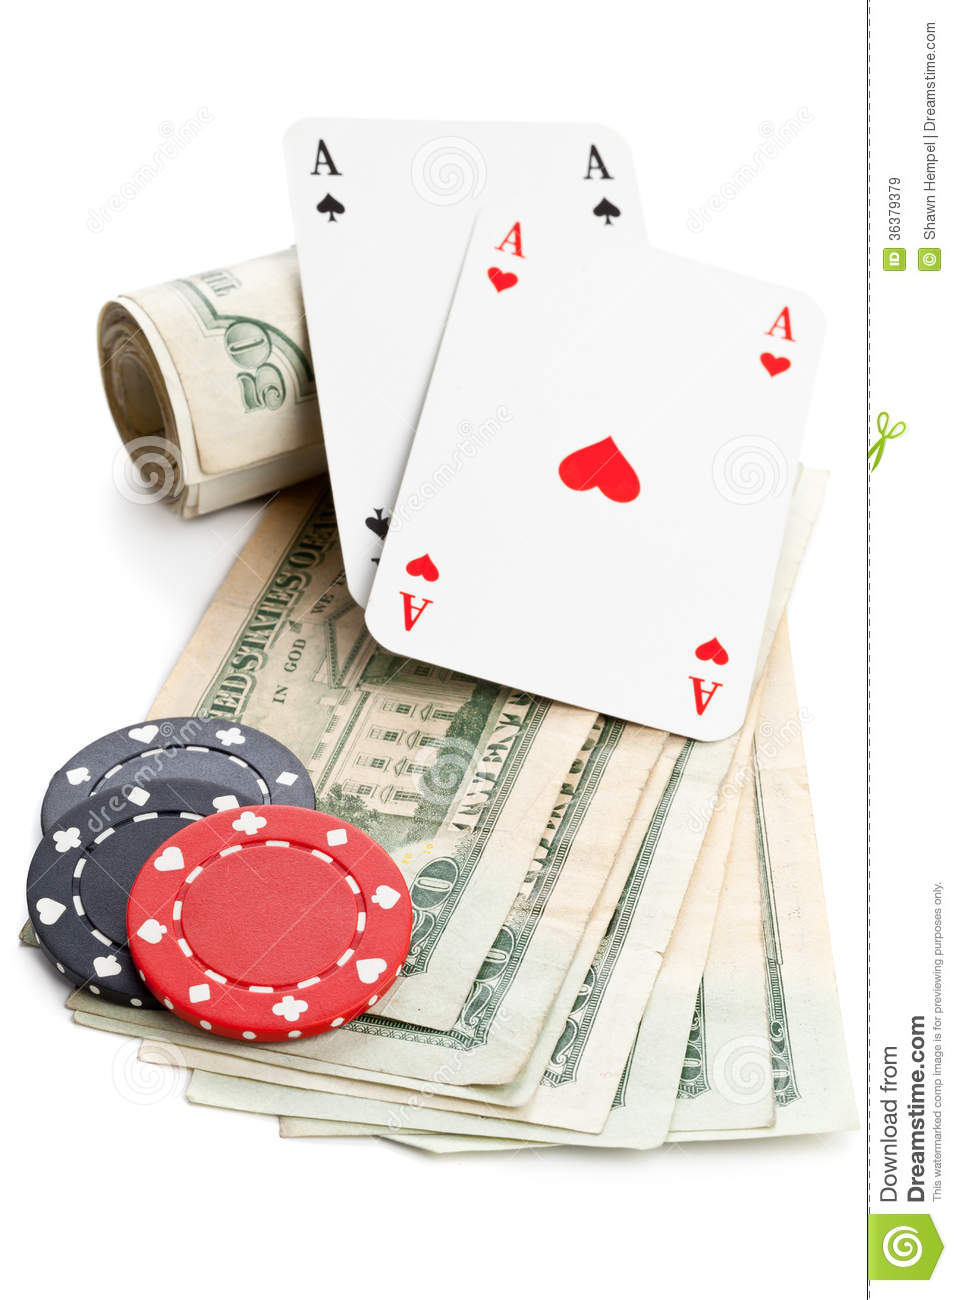 how to play pocket aces preflop